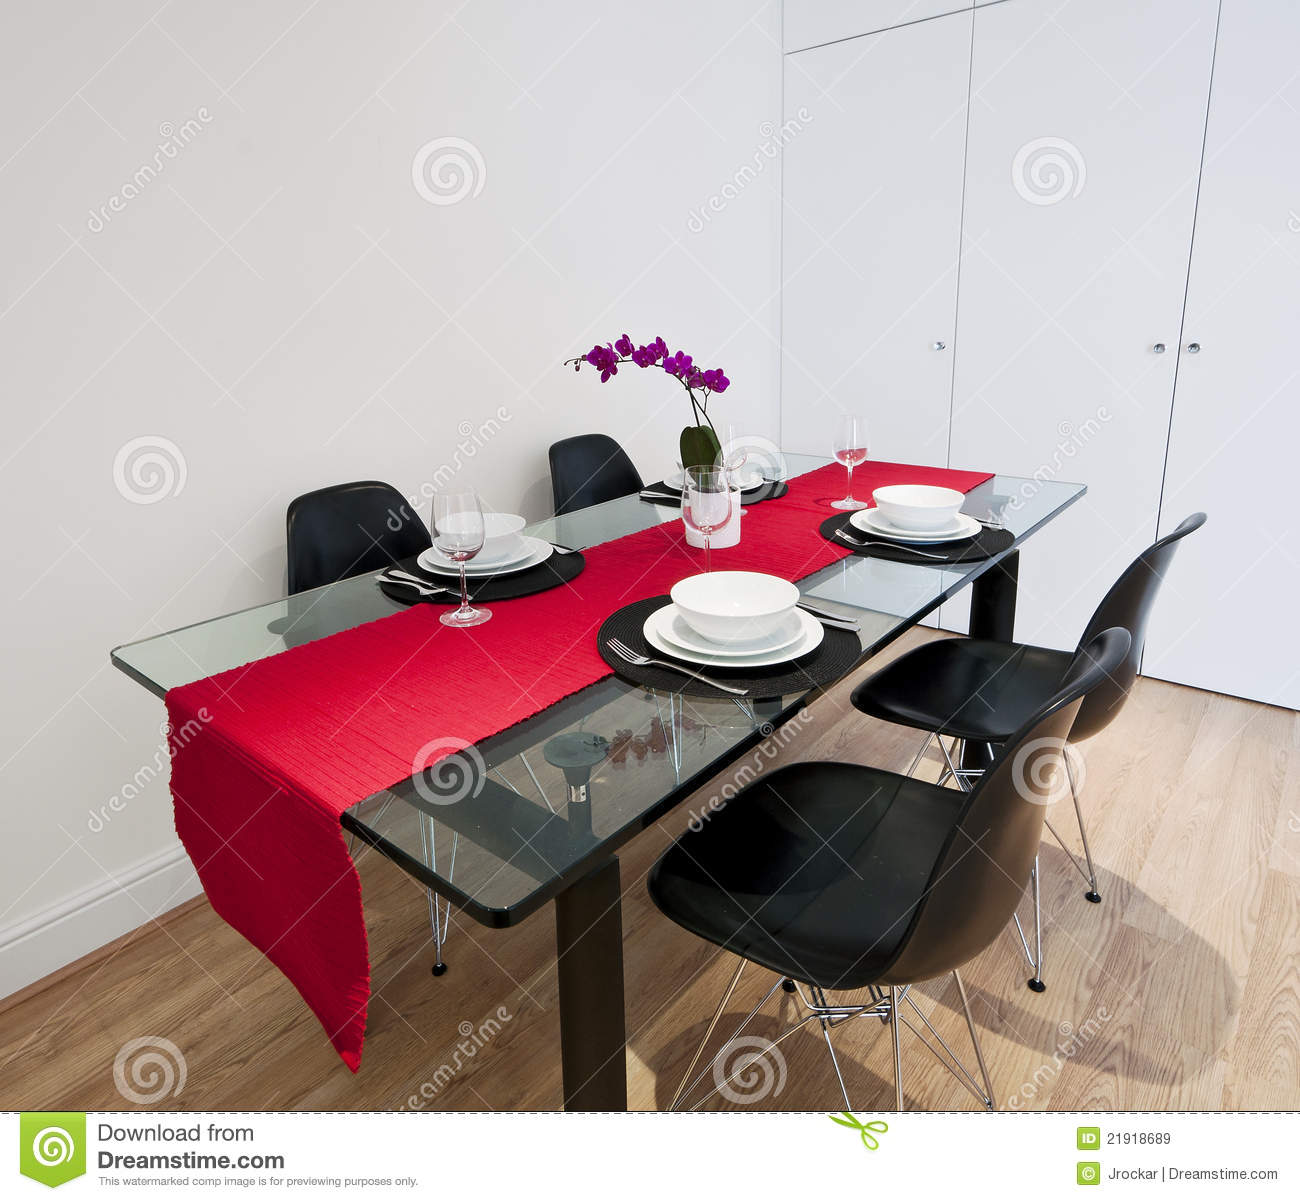 Dining Table With Red Cloth Royalty Free Stock Images